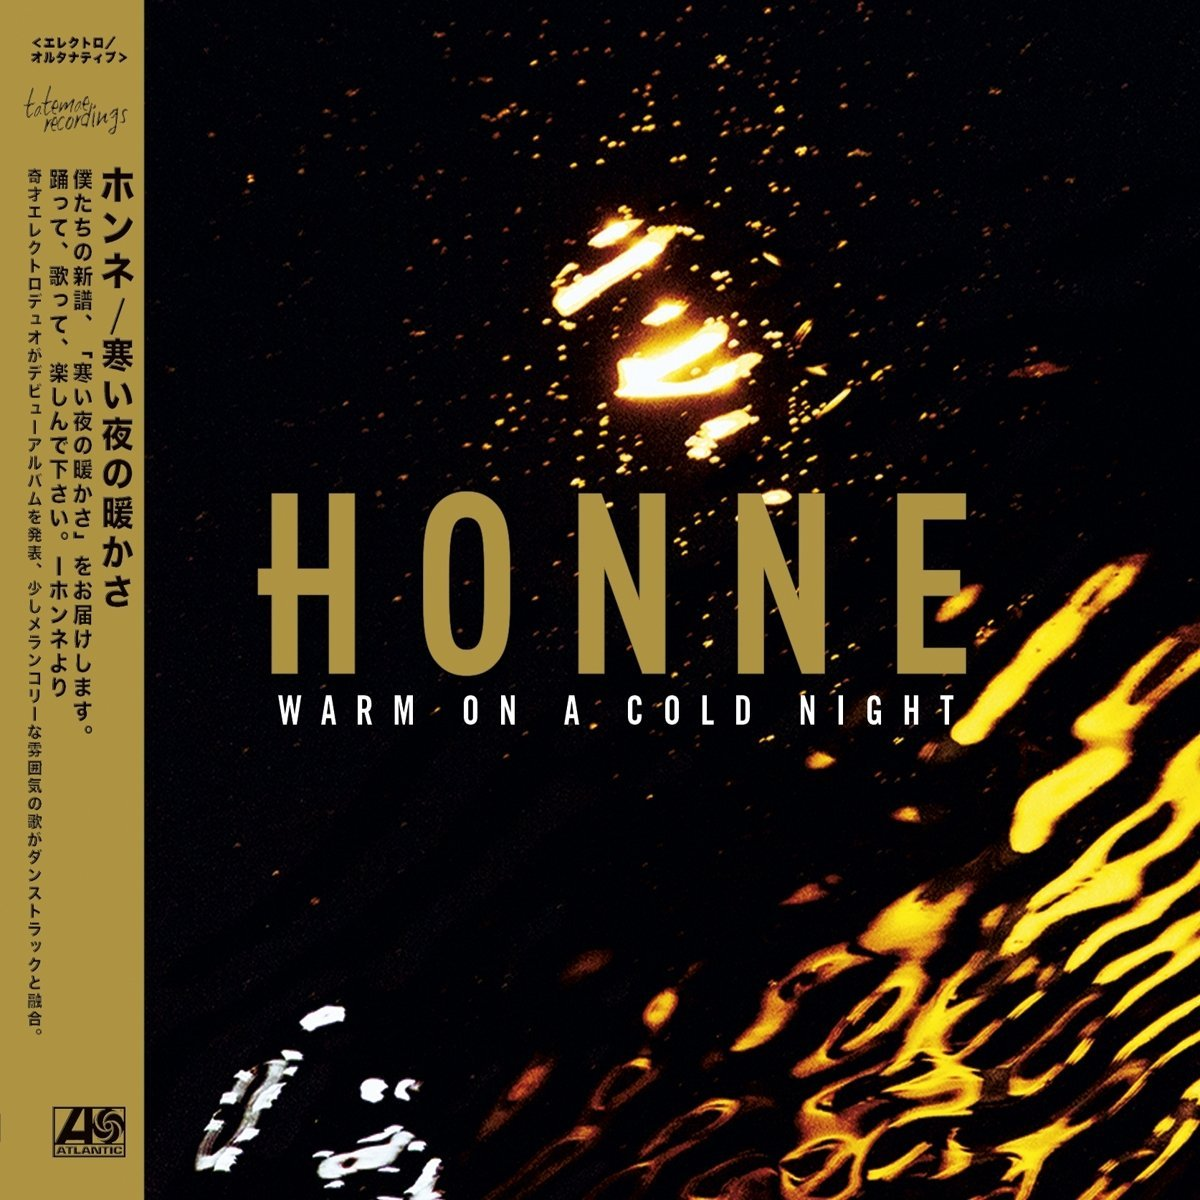 "HONNE's long-awaited debut feels too familiar to be exciting Honne Read nextStrange Boy rope in the help of JFDR on weird and wonderful new track ""Suburbia""Mammút have conquered Iceland and now it's time for the world to hear themPolaroids with Best Coast at SXSWMikal Cronin: ""I'm still asking questions all the time! I'm still figuring out shit that way!""NewsListenAlbum Reviews Florence and the MachineHigh As Hope Tim HeckerHaunt Me, Haunt Me Do It Again & Radio Amor (Reissues) ResinaTraces GorillazThe Now Now John ColtraneBoth Directions at Once: The Lost AlbumLookTen reasons why St. Vincent is one of the most exciting live acts on the planetKing Gizzard and the Lizard Wizard blow the roof off Stubb's Waller Creek AmphitheaterWatchWatch Drag City signee Circuit des Yeux in sessionWatch Tuareg guitar virtuoso Bombino in session"